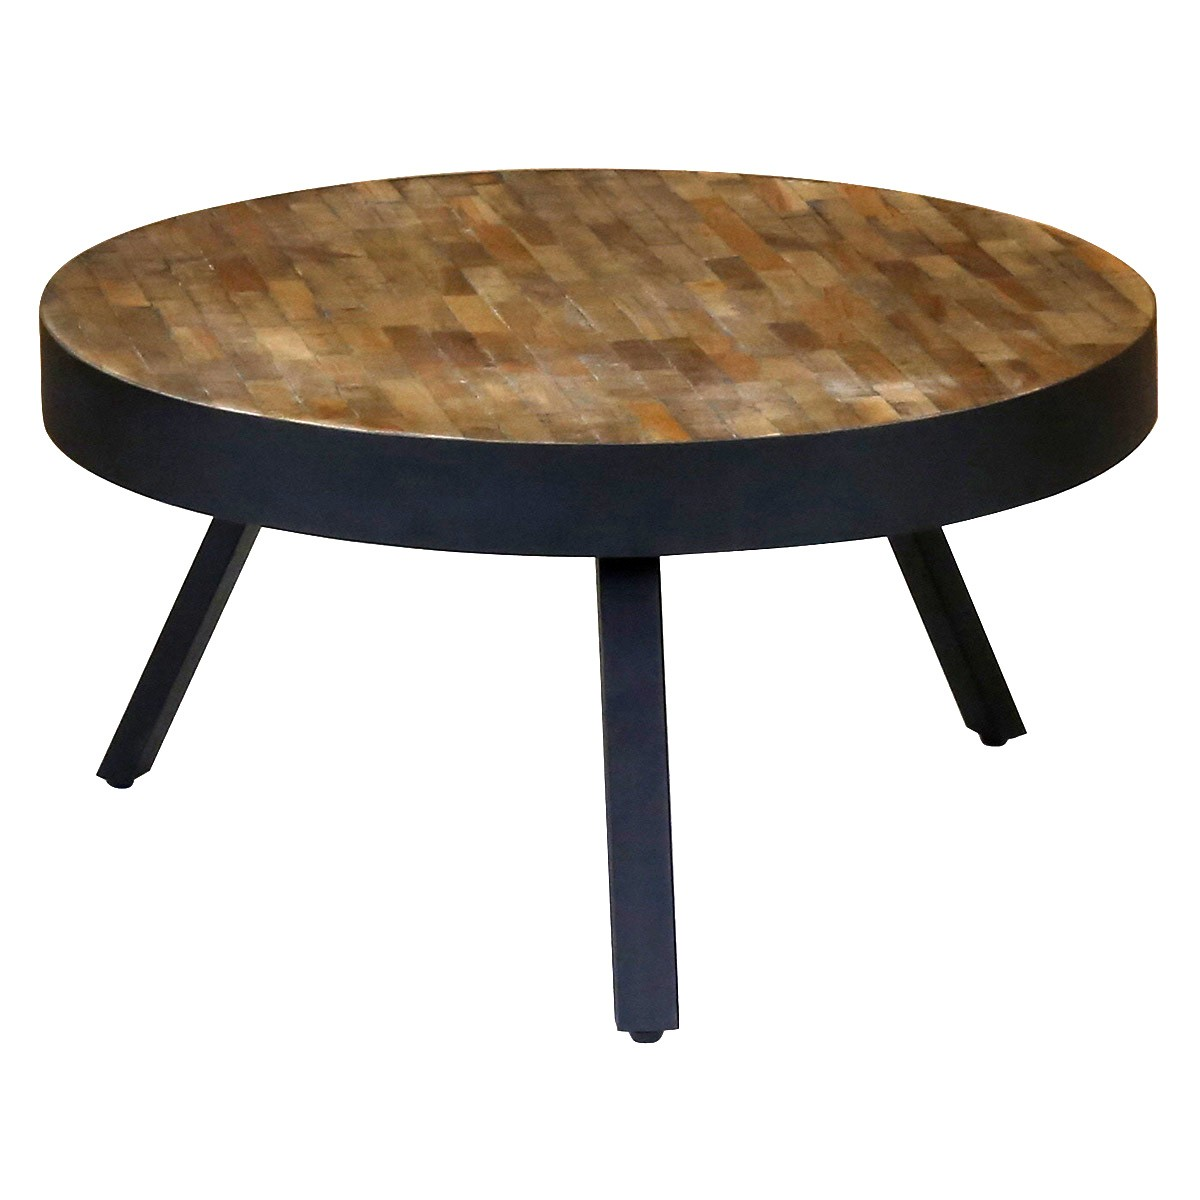 table basse ronde avec horloge. Black Bedroom Furniture Sets. Home Design Ideas